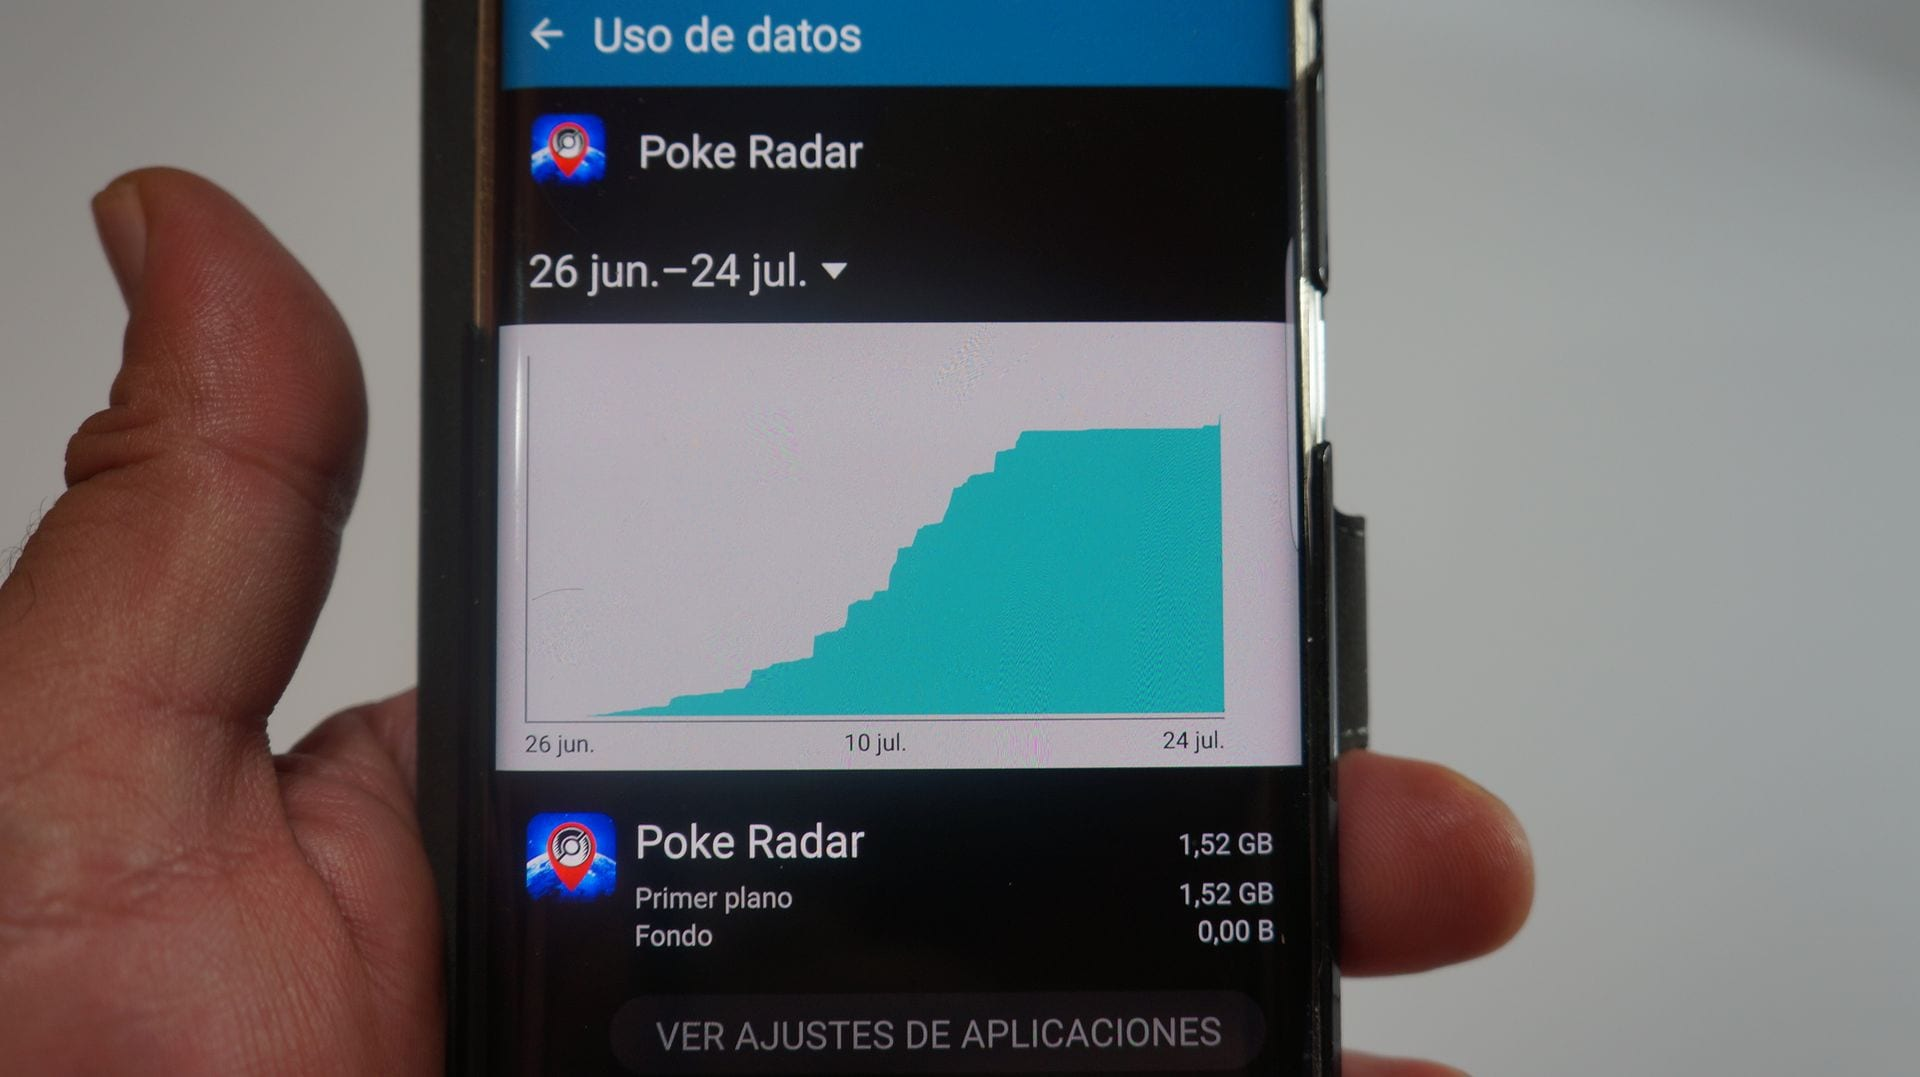 [APK] ¡¡Cuidado!! Pokeradar for Pokemon Go ya disponible en el Play Store y APK